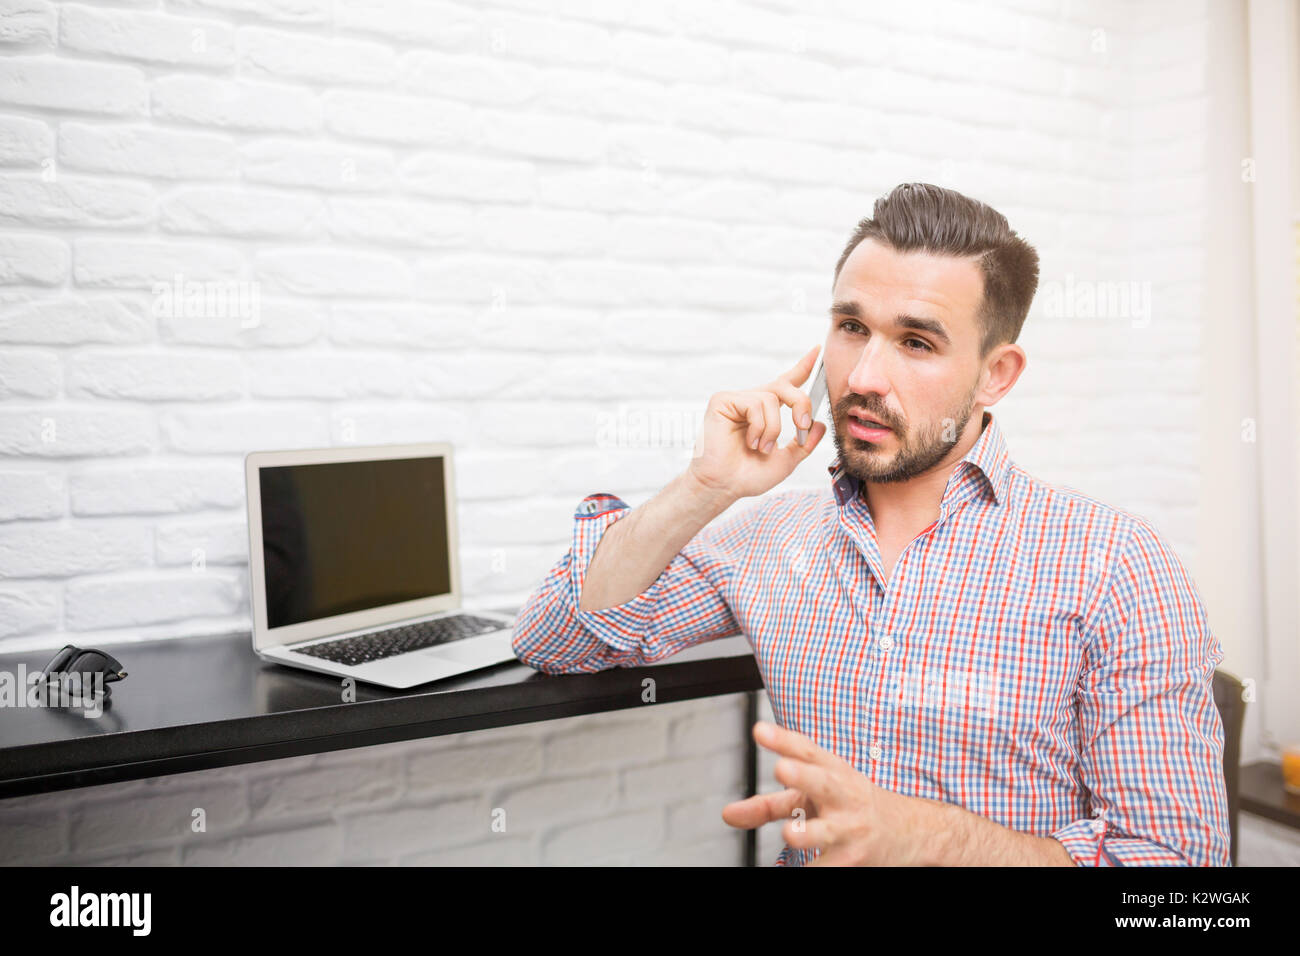 Young man carrying out negotiations by the phone in his home office. - Stock Image